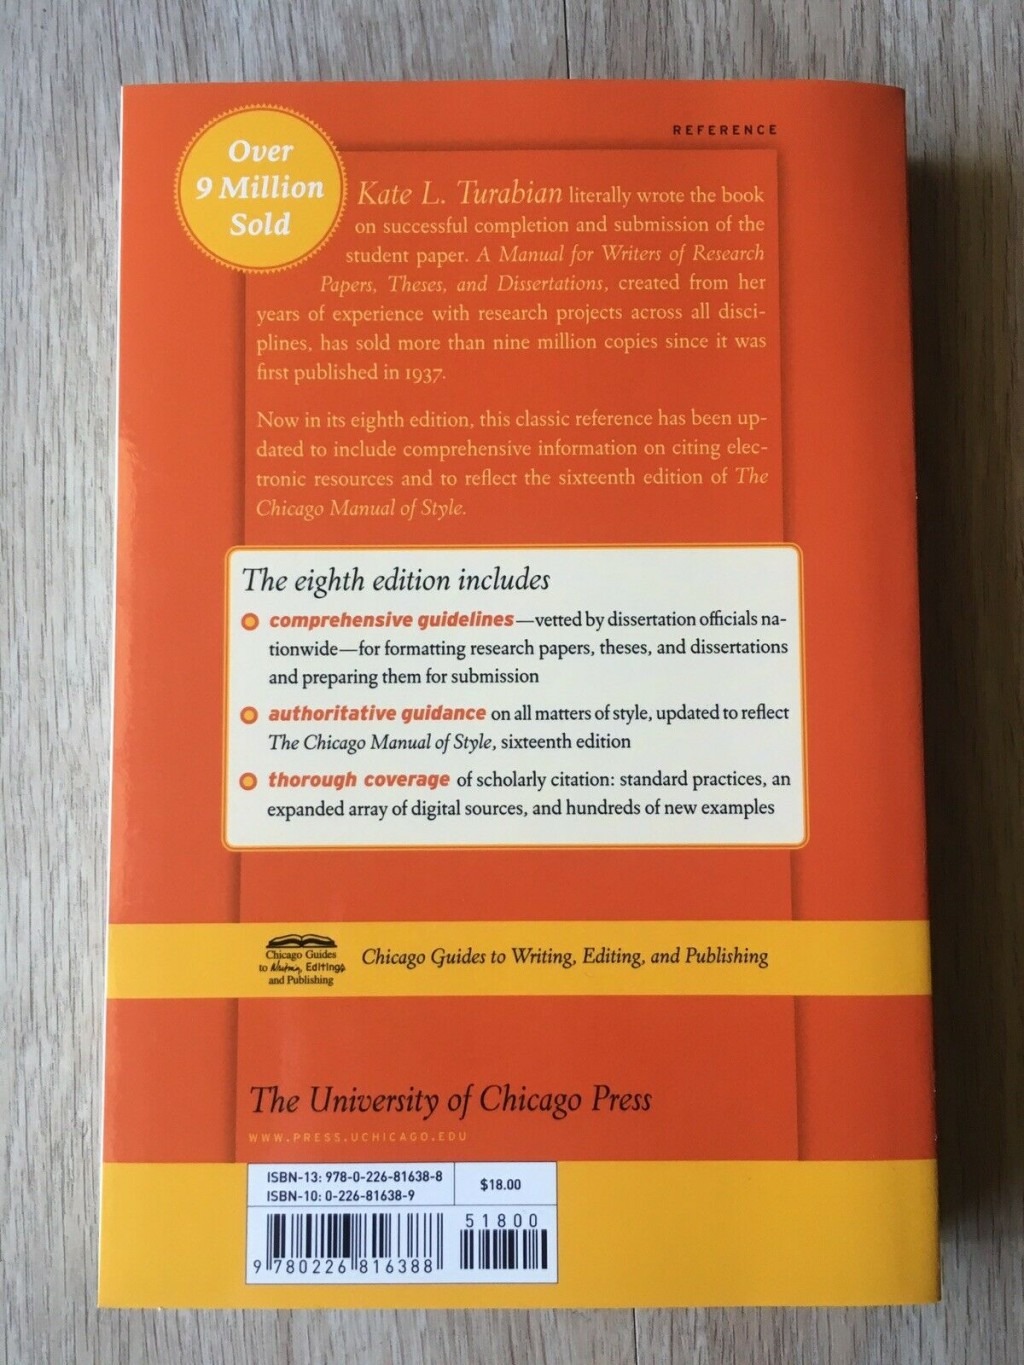 011 Research Paper Manual For Writers Of Papers Theses And Dissertations S Sensational A Ed. 8 Turabian Ninth Edition Large